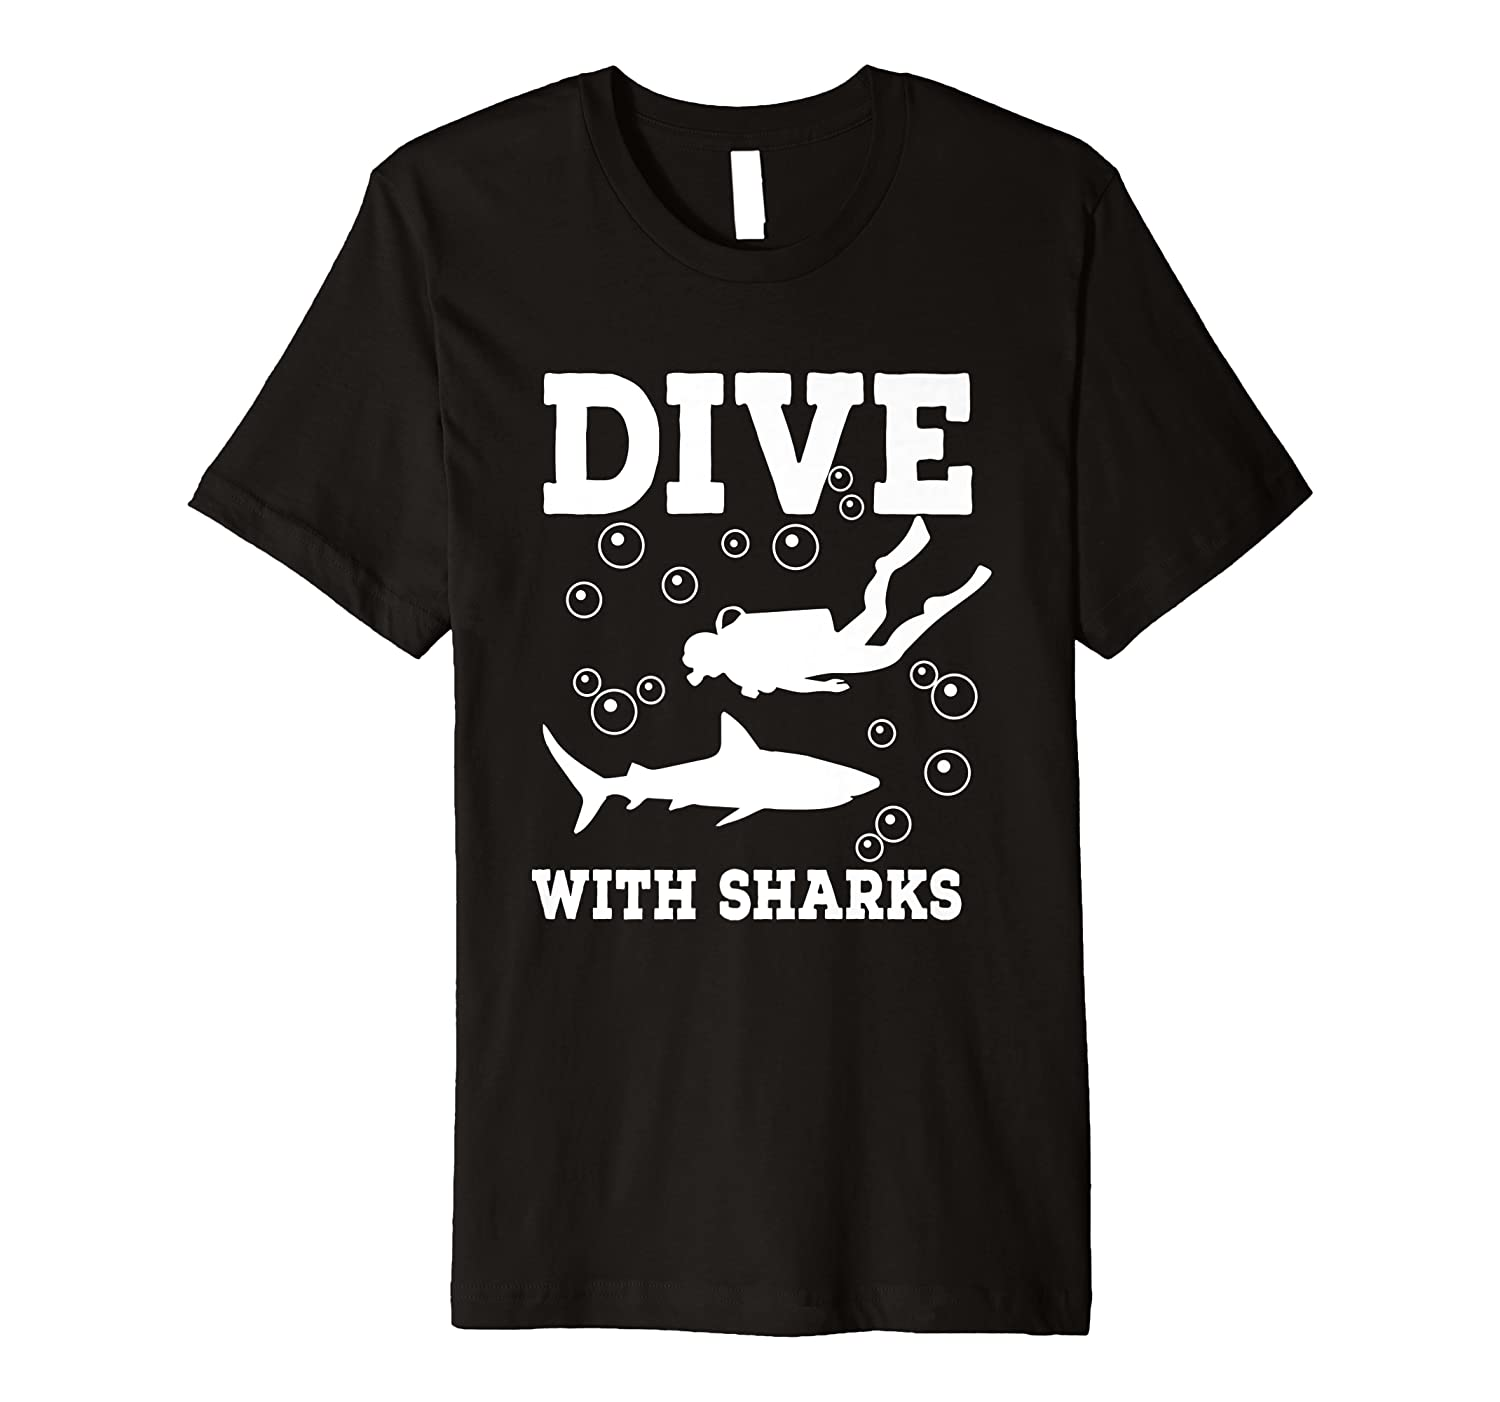 Dive with Sharks Premium T-Shirt